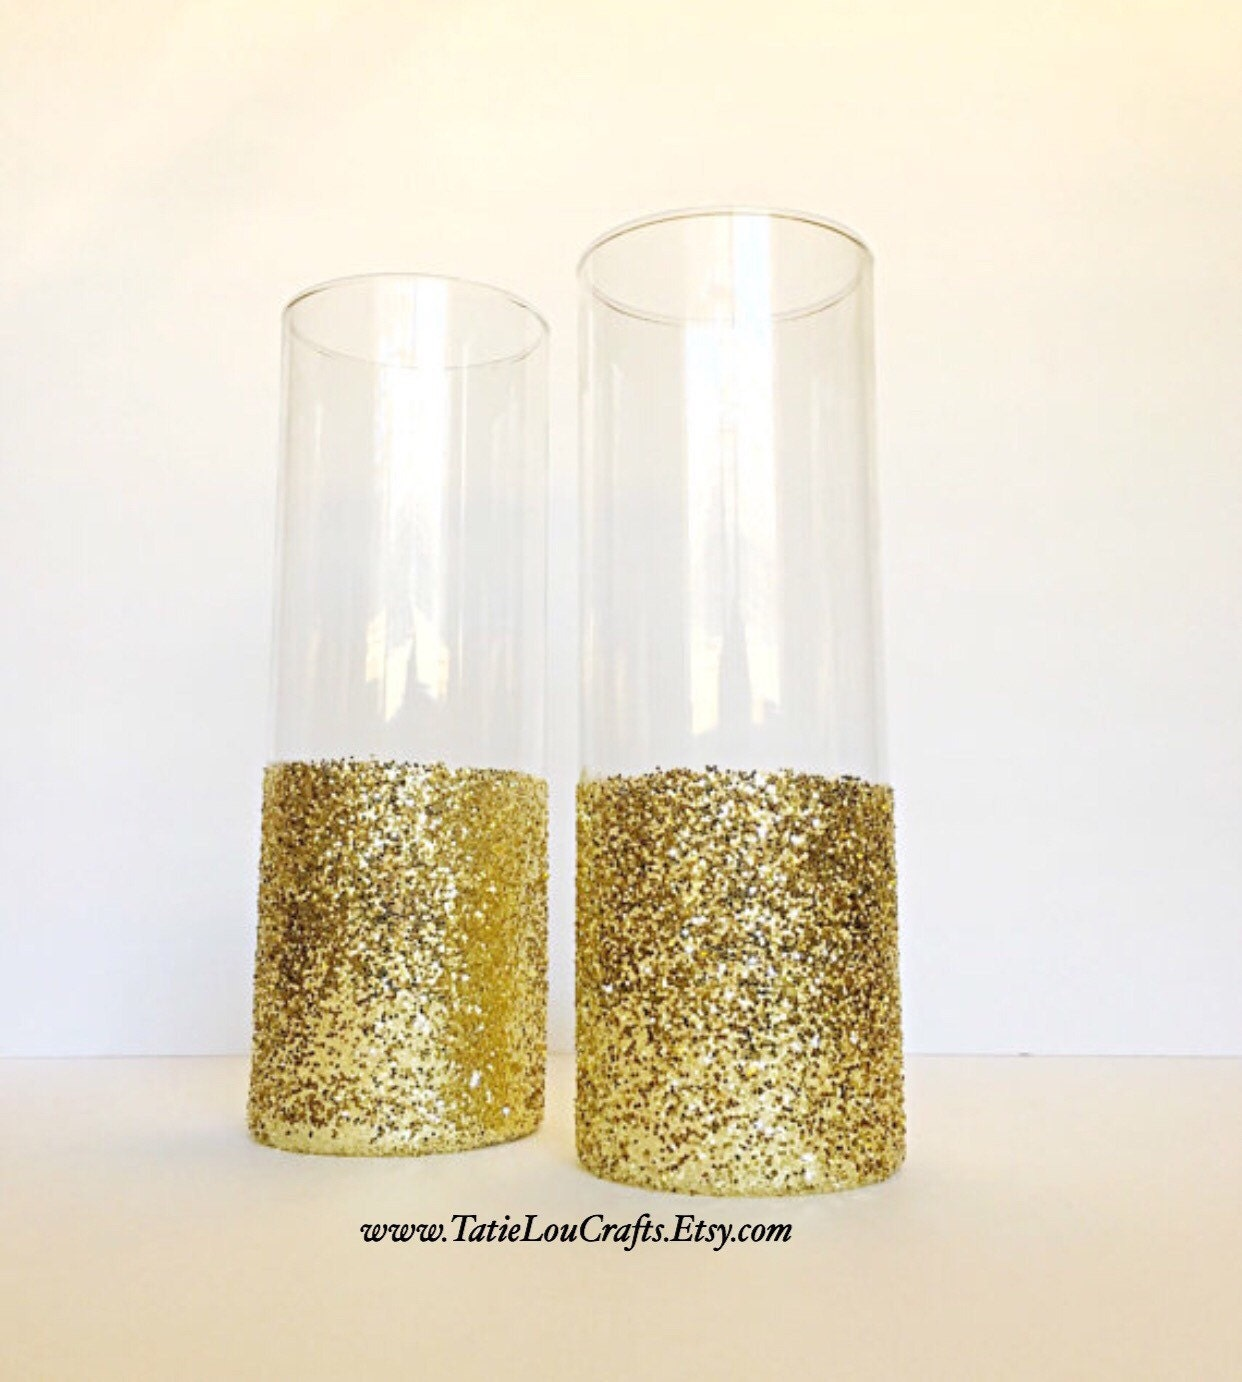 Set Of 2 Glass Cylinder Vases Wedding CenterpiecesBaptism